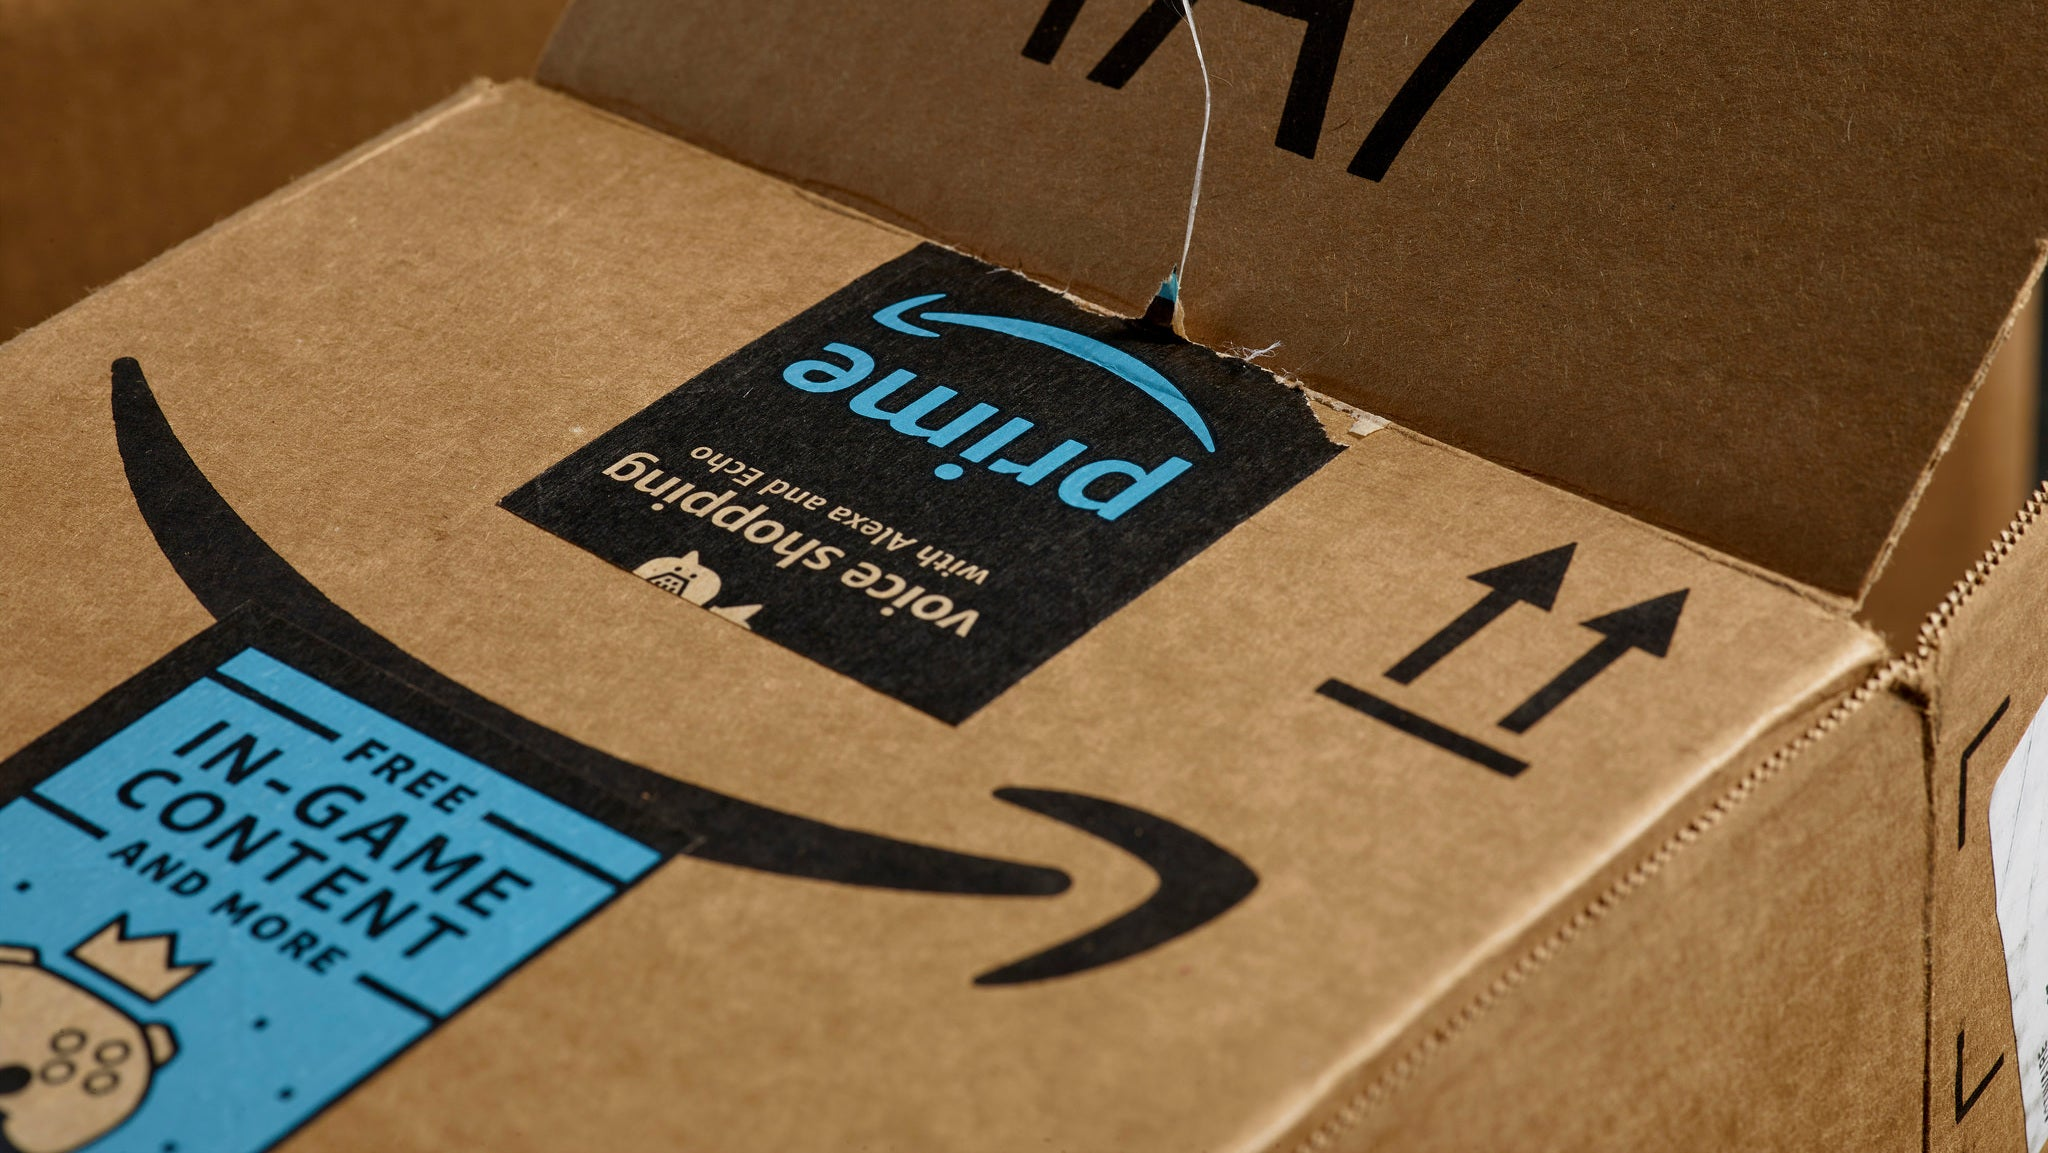 What To Do With Amazon Packages You Didn't Order